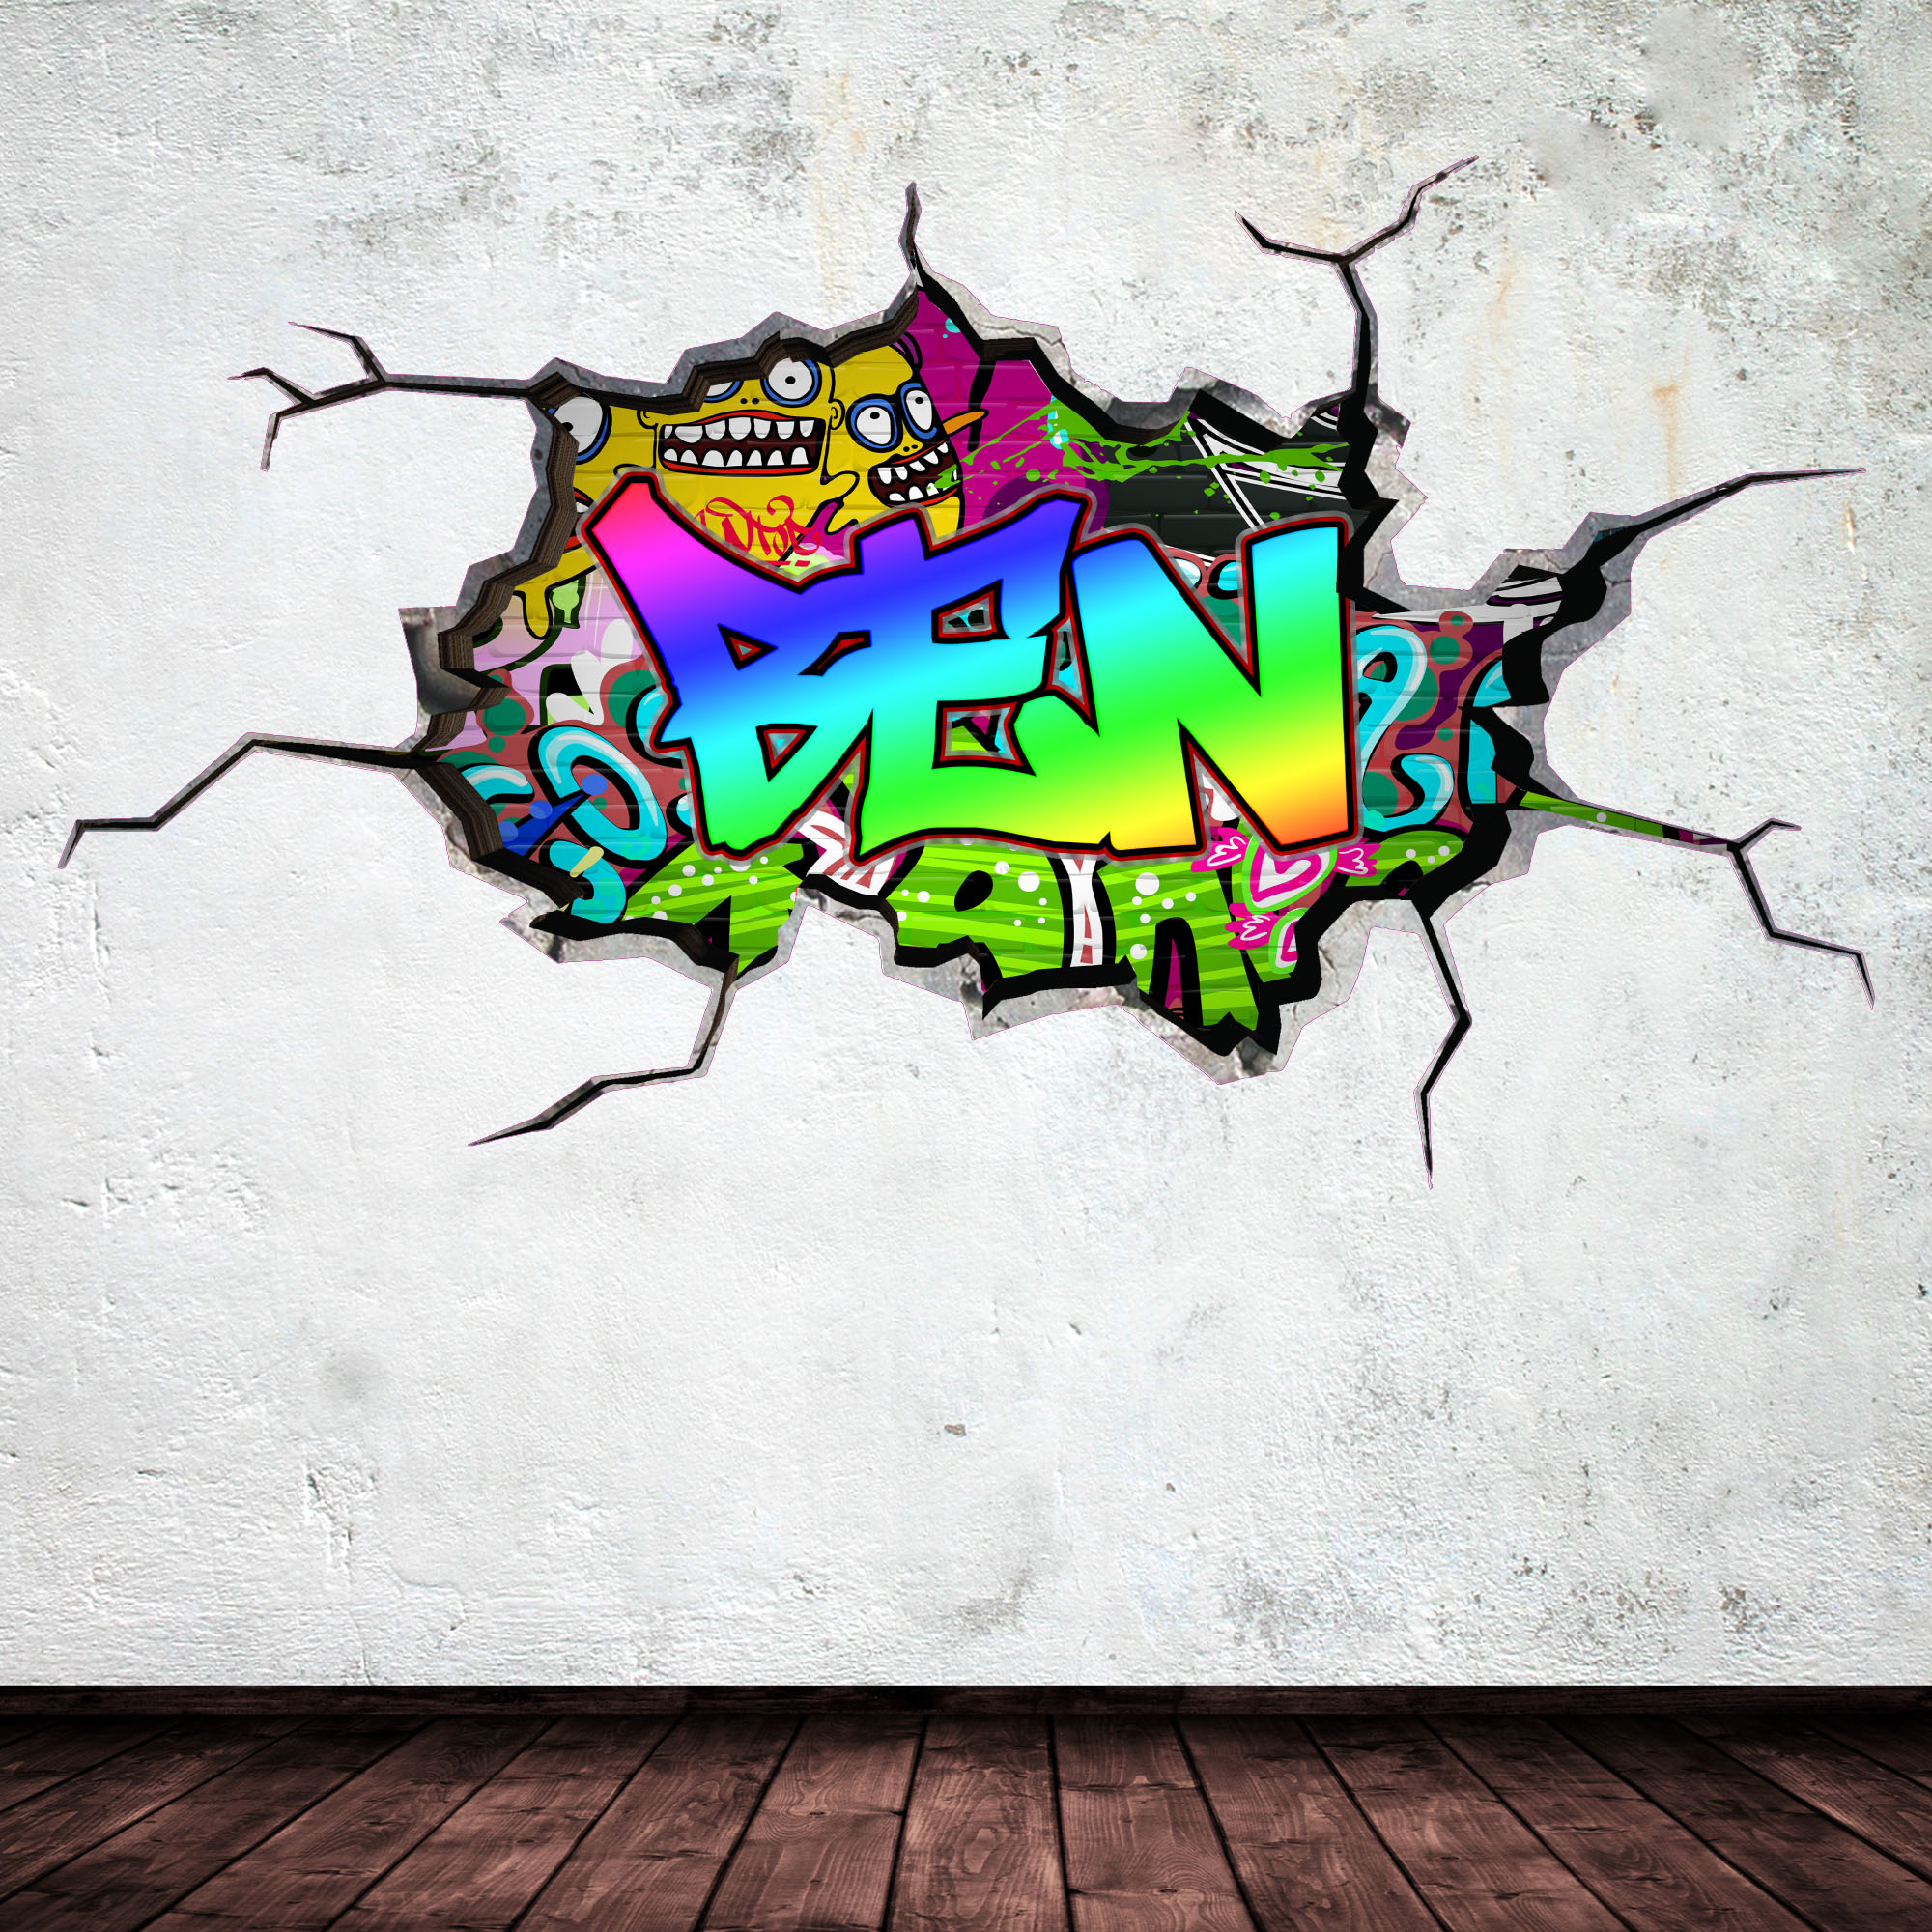 Graffiti wall sticker images home wall decoration ideas full colour personalised 3d graffiti name cracked wall art full colour personalised 3d graffiti name cracked amipublicfo Gallery